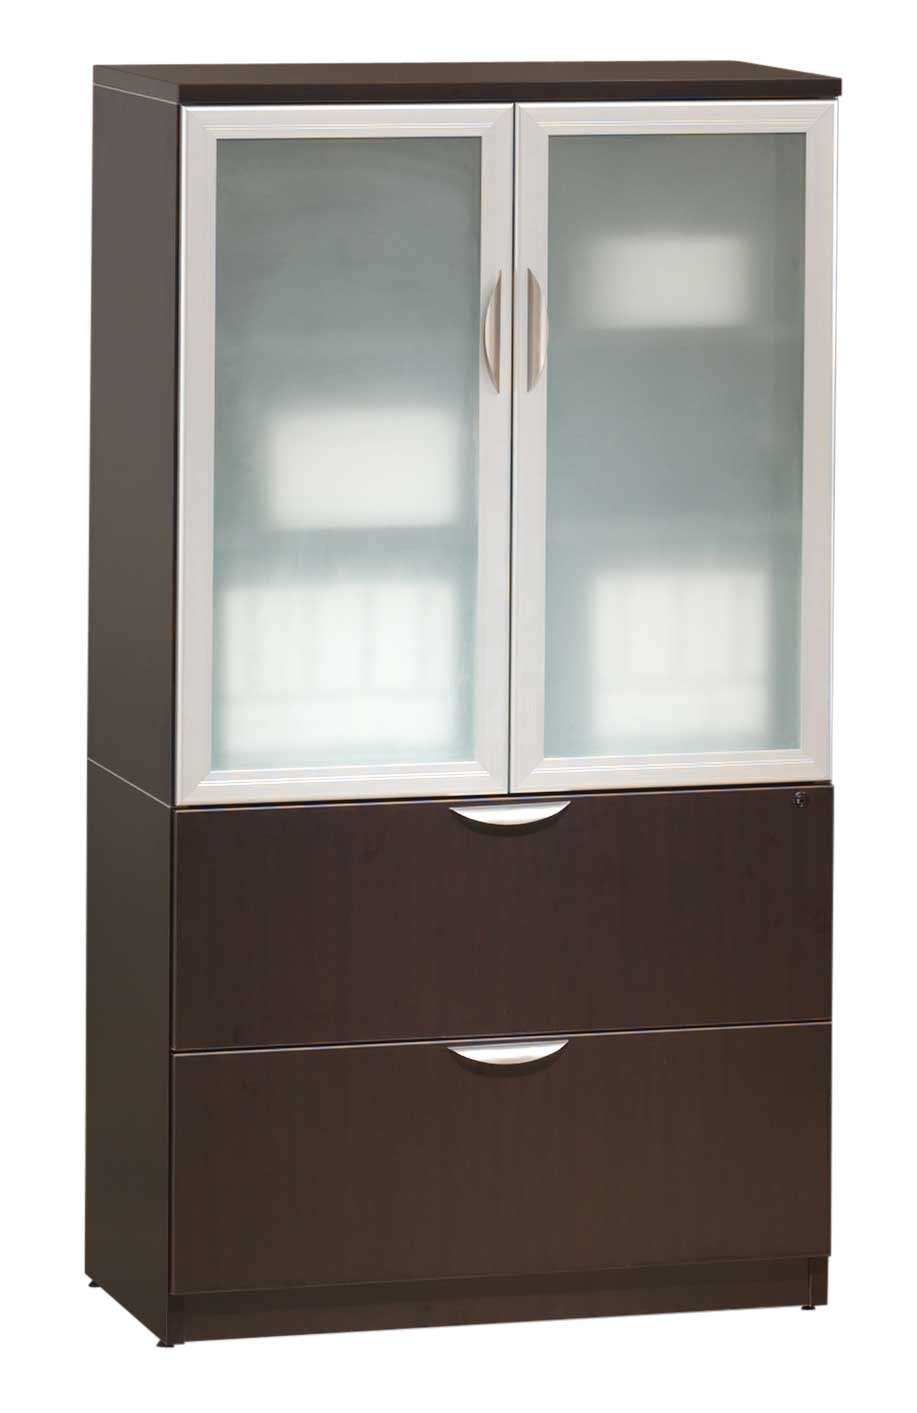 Storage Cabinet Sliding Doors Tall Storage Cabinets With Sliding Doors Roselawnlutheran